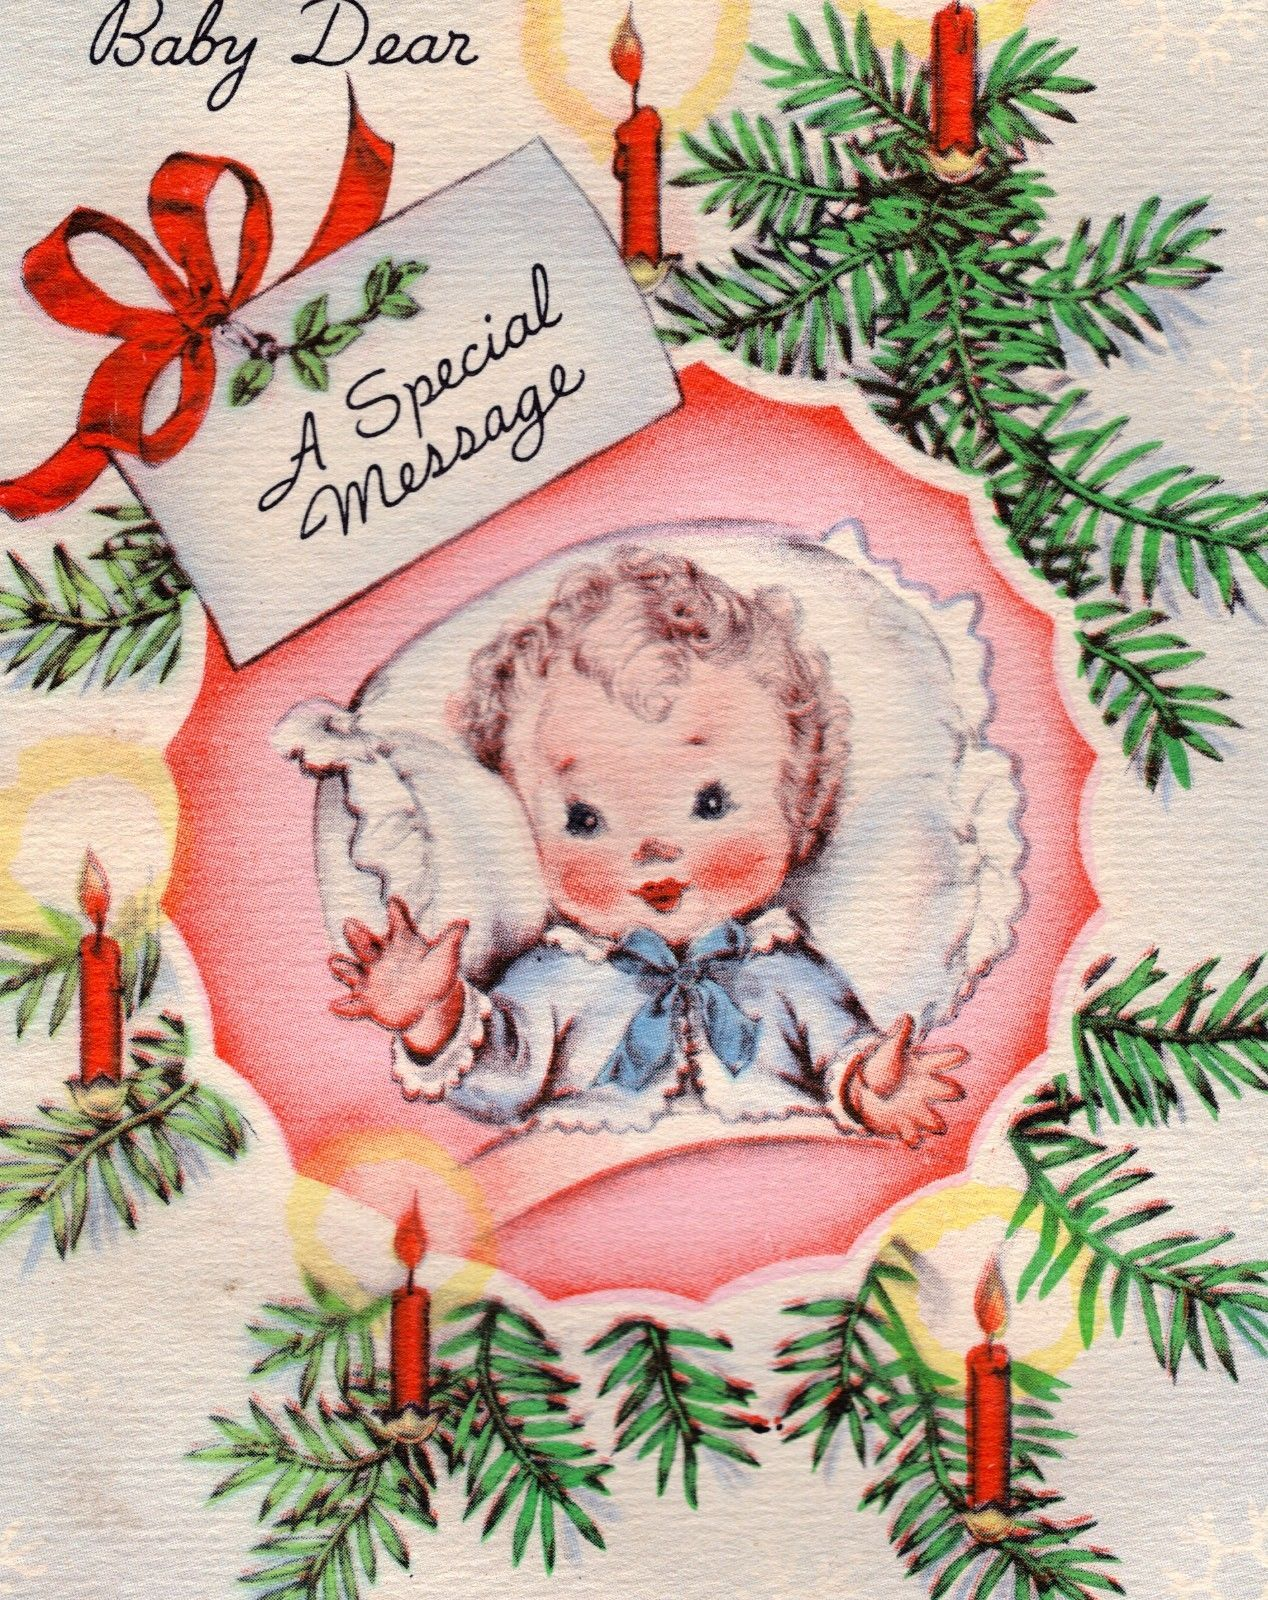 Vintage Christmas Card 1940s Adorable Baby W Curly Hair 1st Xmas